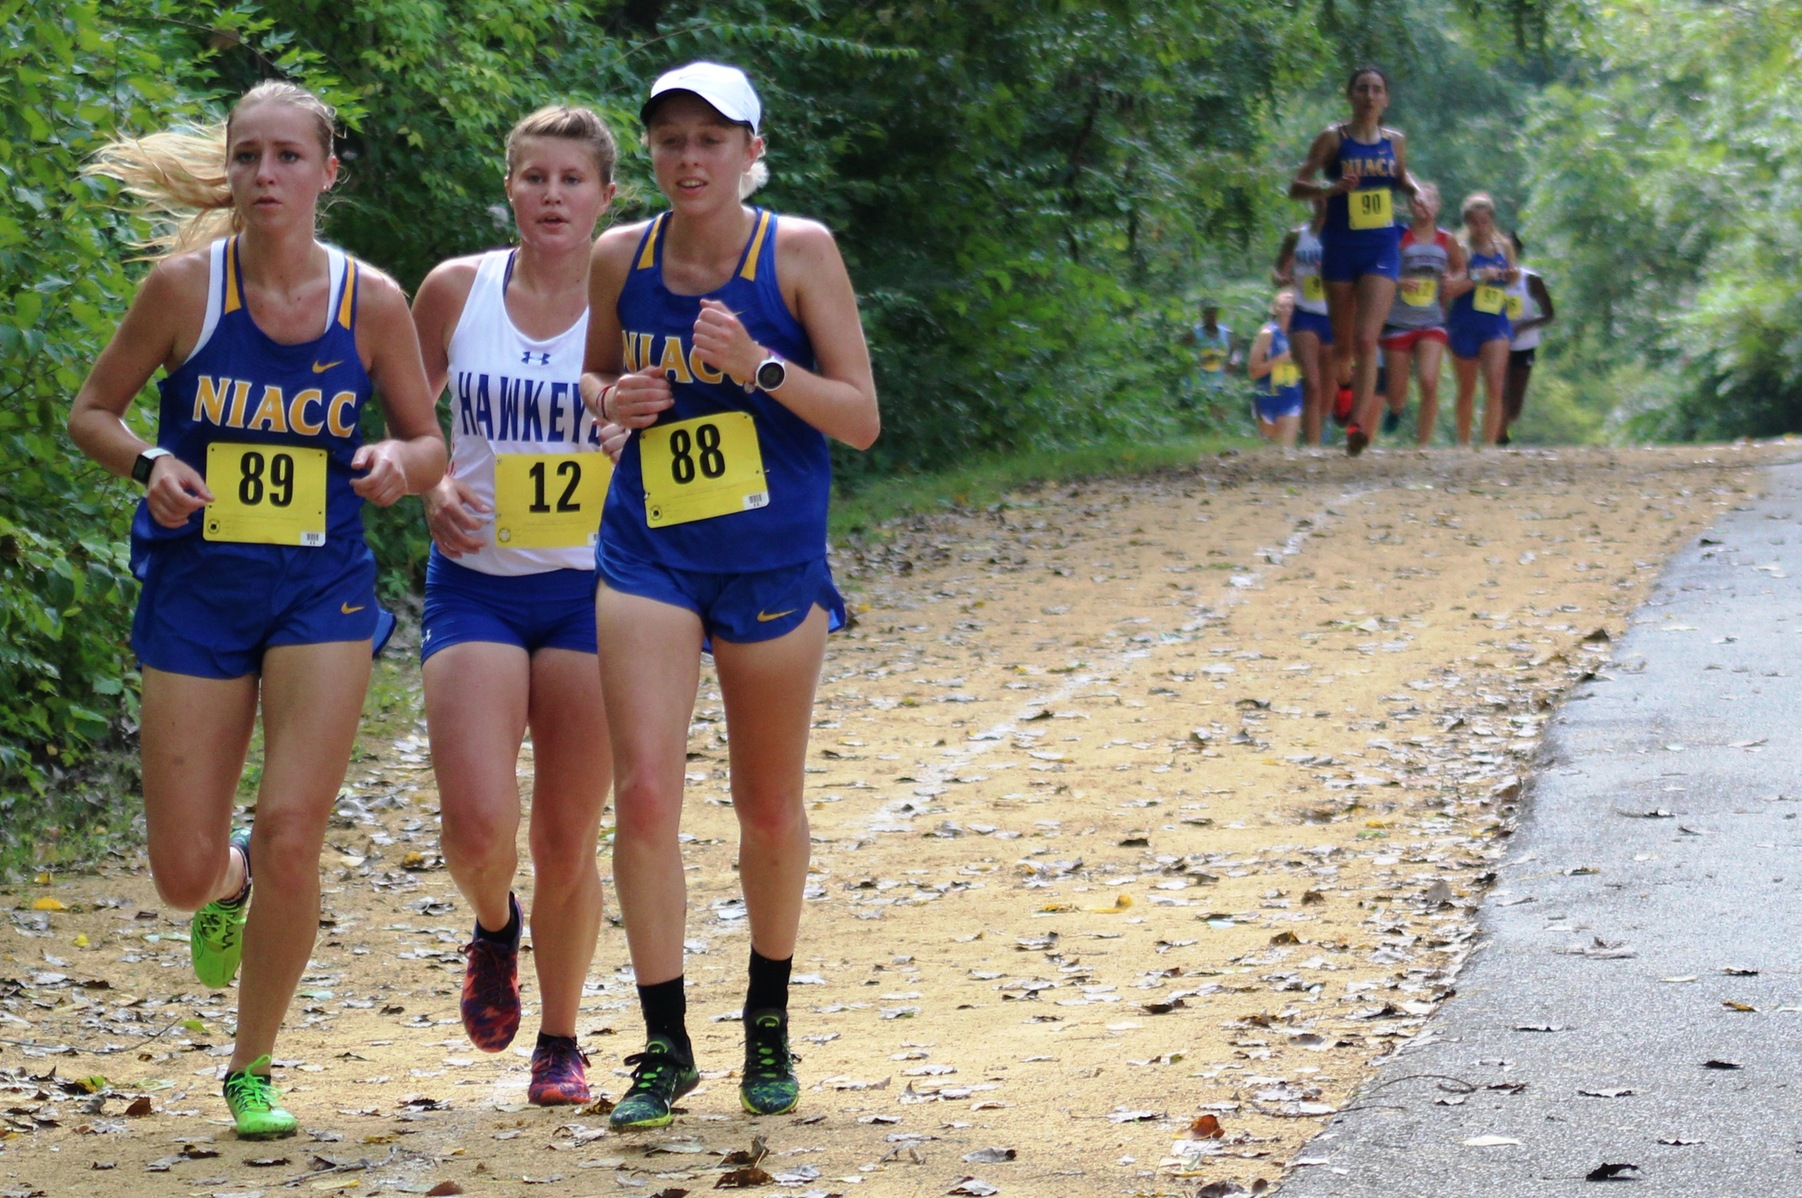 NIACC's Cecelia Hemsworth and Julia Dunlavey run at the regiona time trial in Davenport in August.